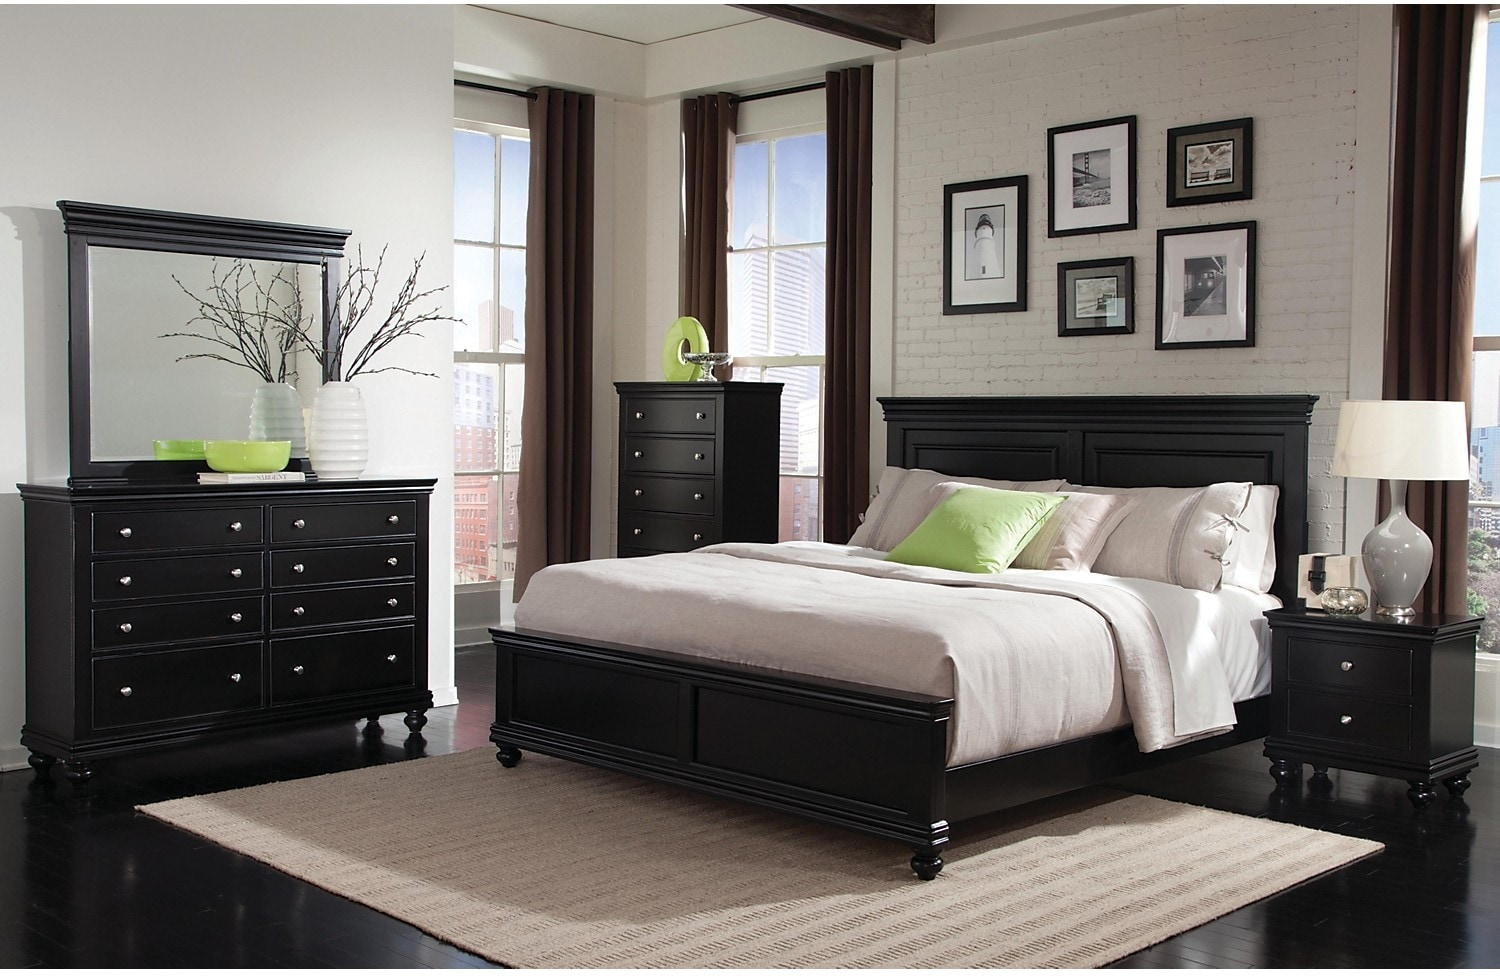 Bridgeport 5 piece queen bedroom set black the brick for 5 bedroom